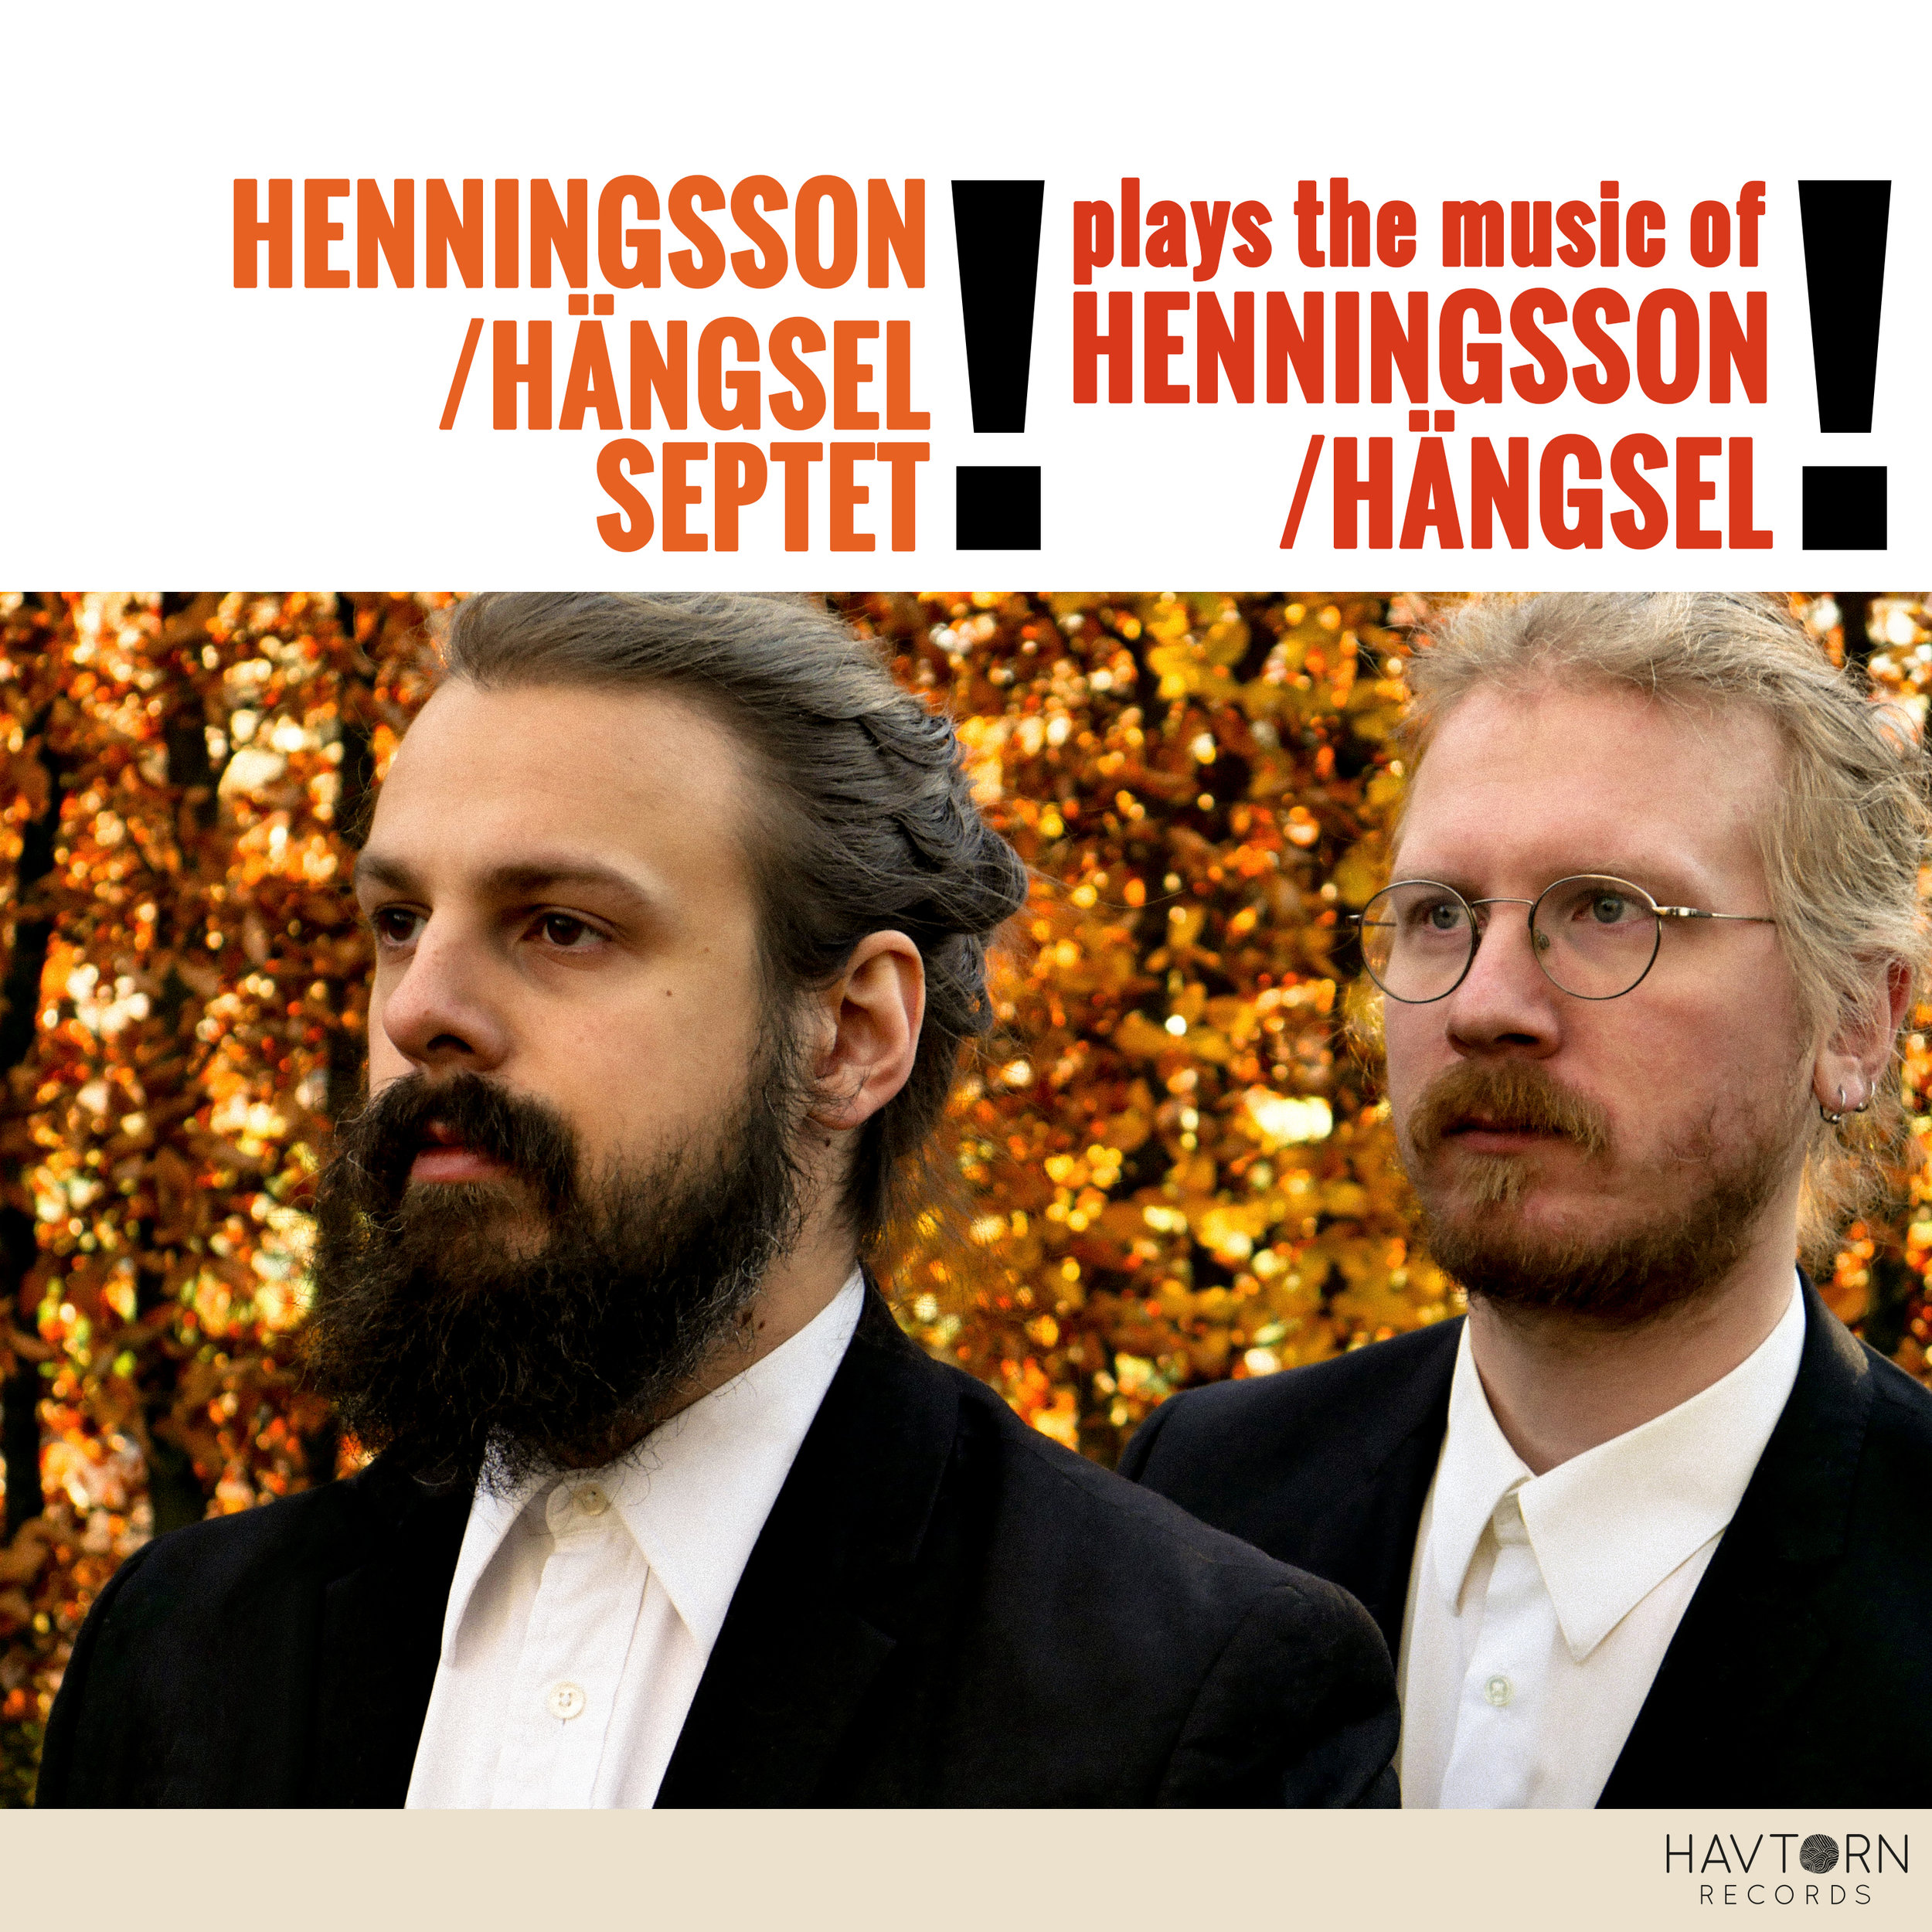 Cover - Plays The Music Of HenningssonHangsel.jpg